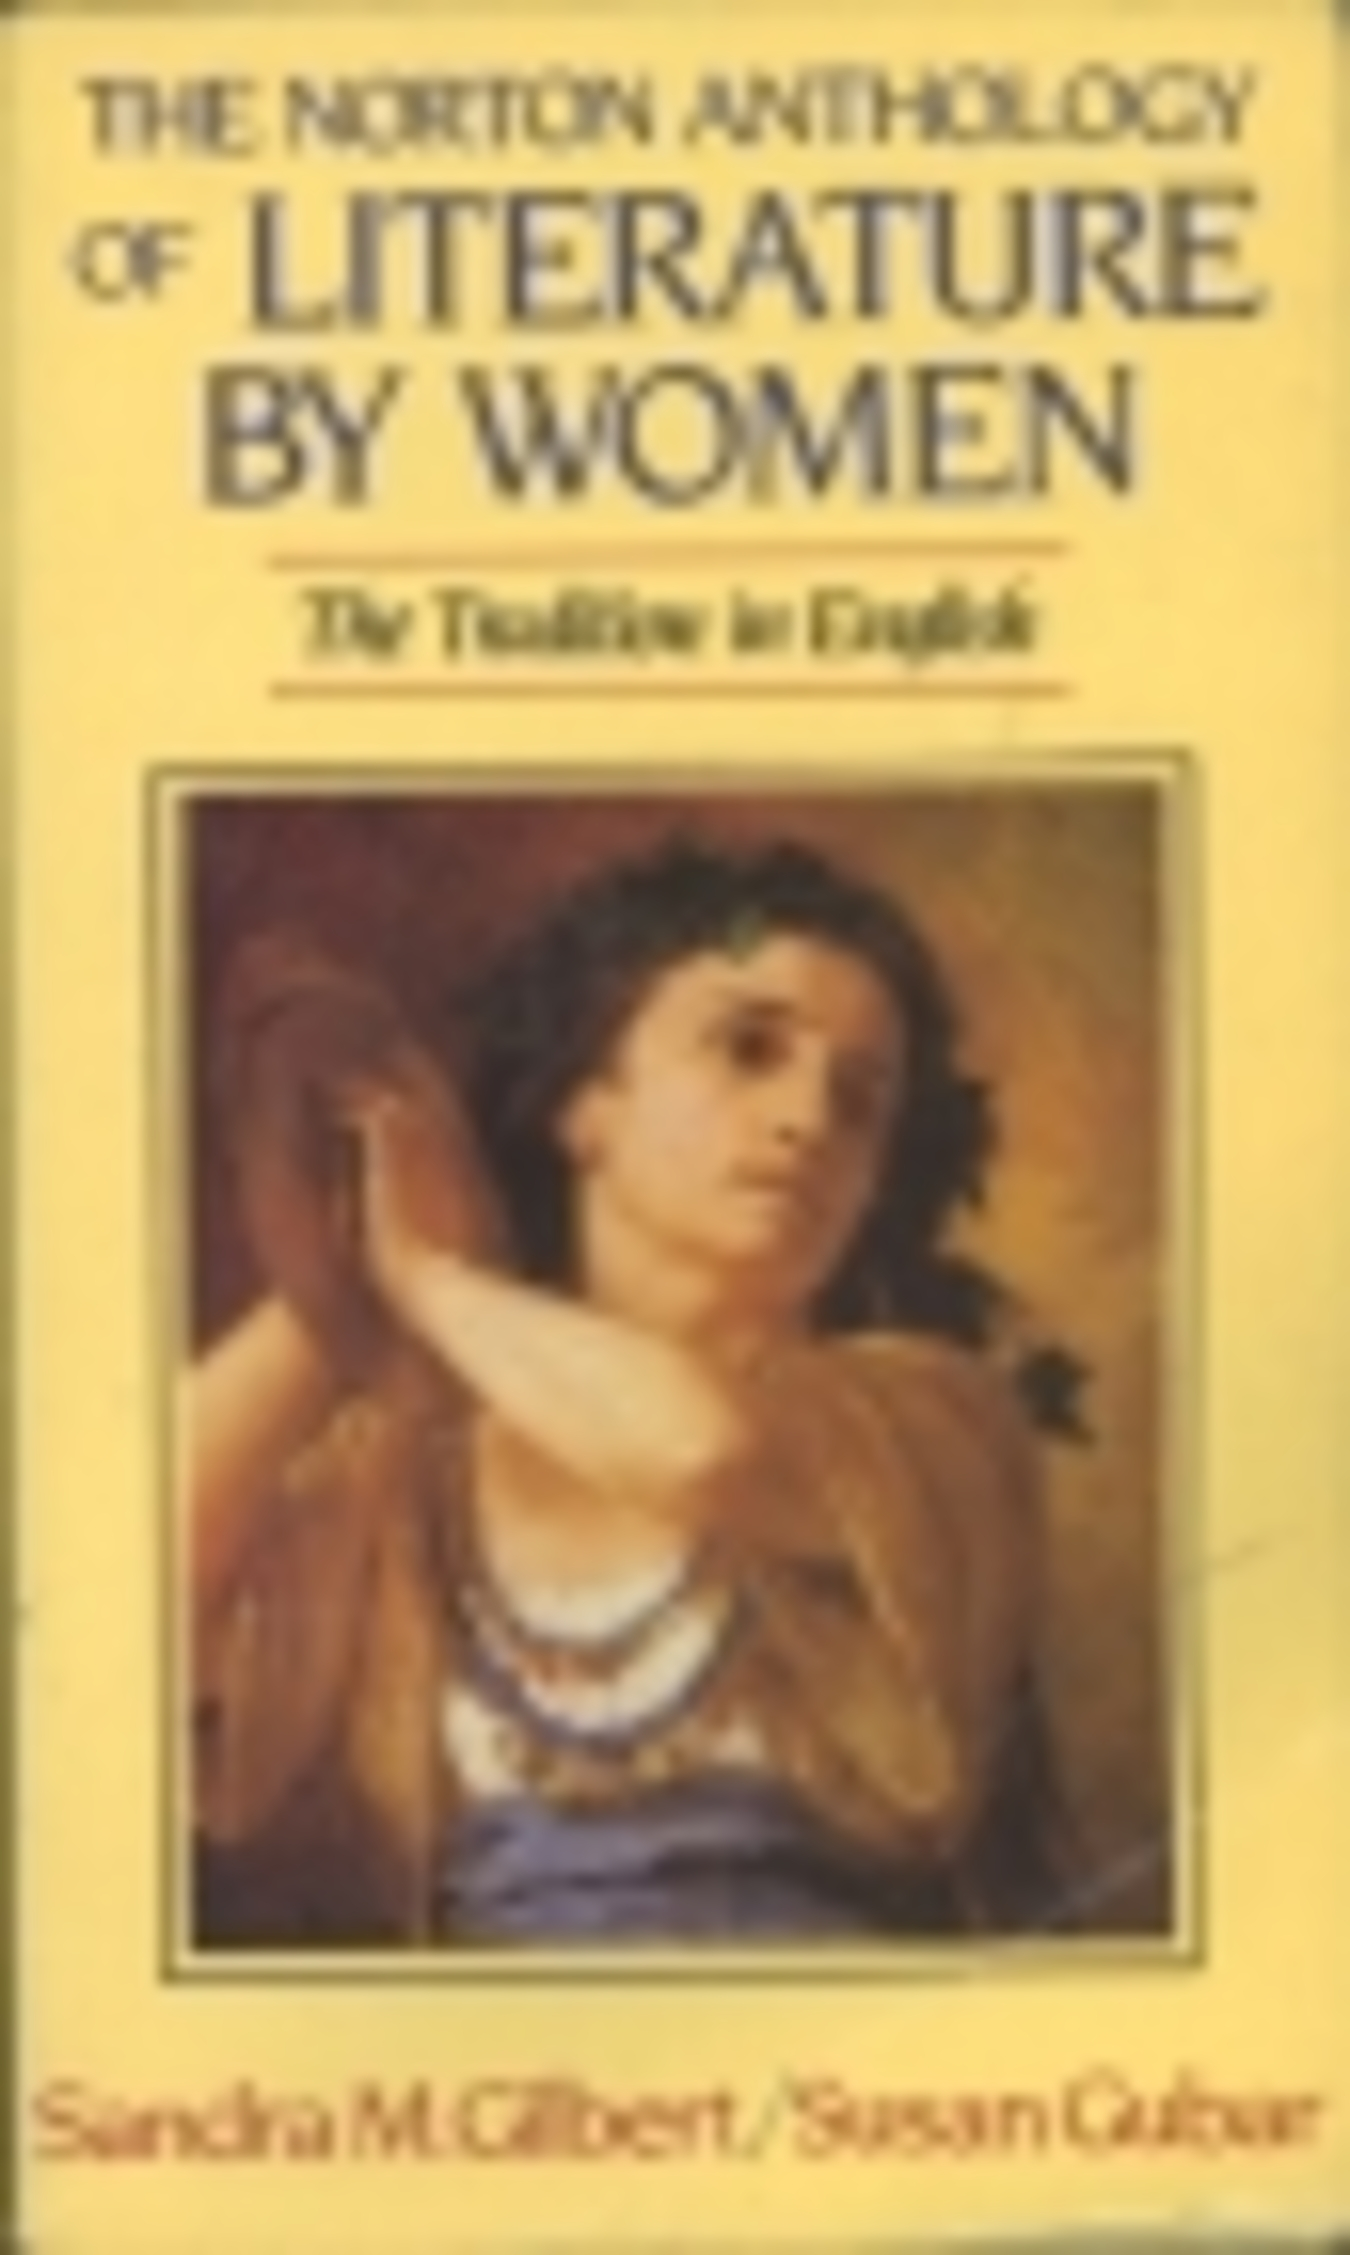 women in literature